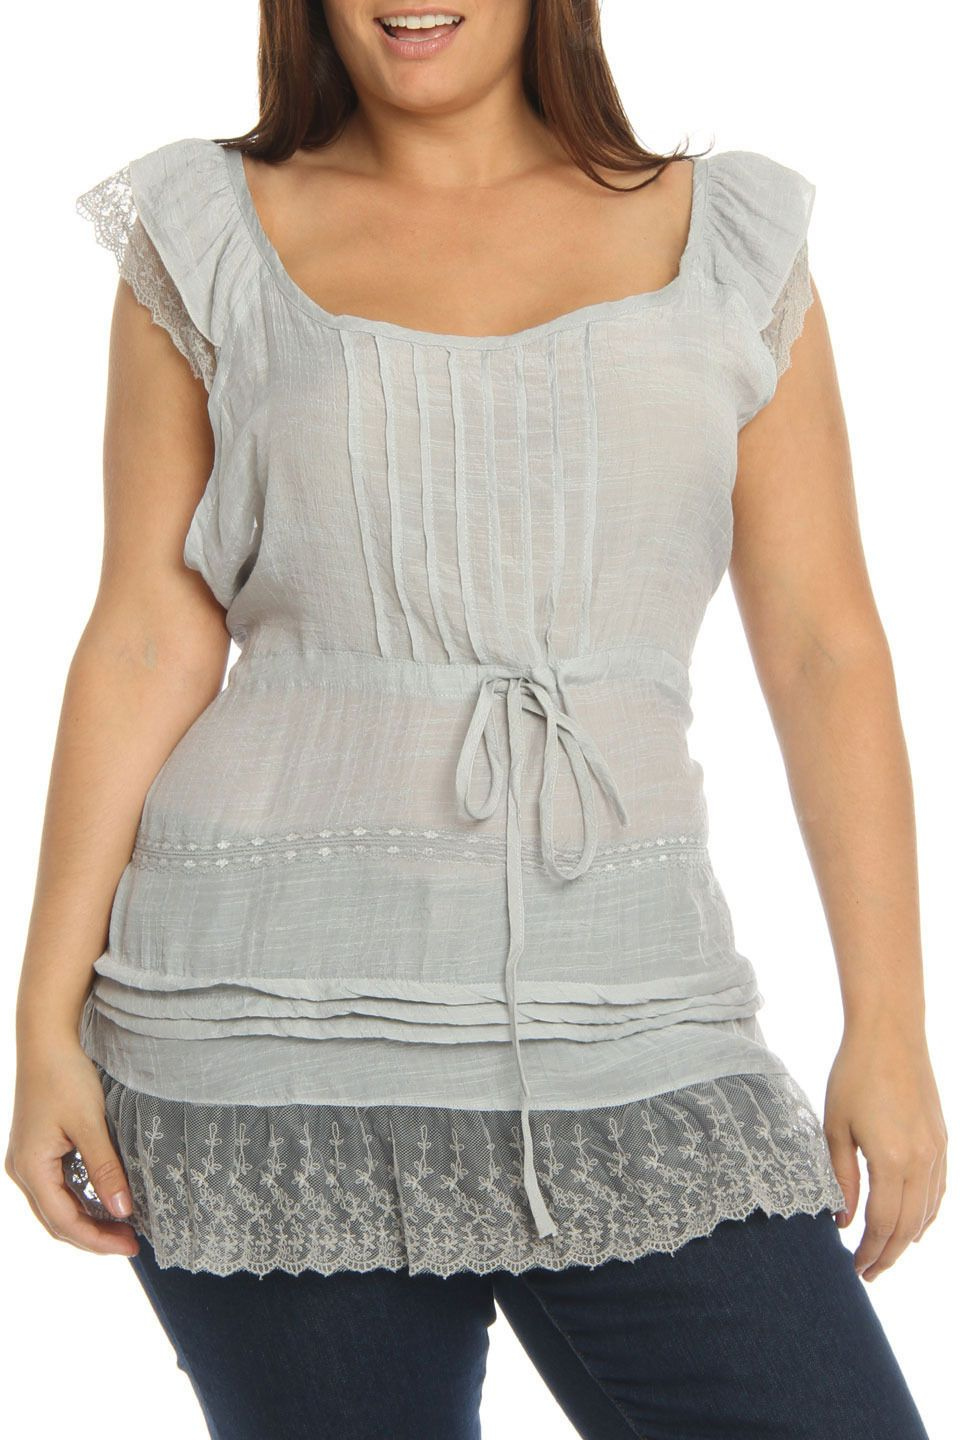 Simply Irresistible The Freshman Top in Gray - Beyond the Rack